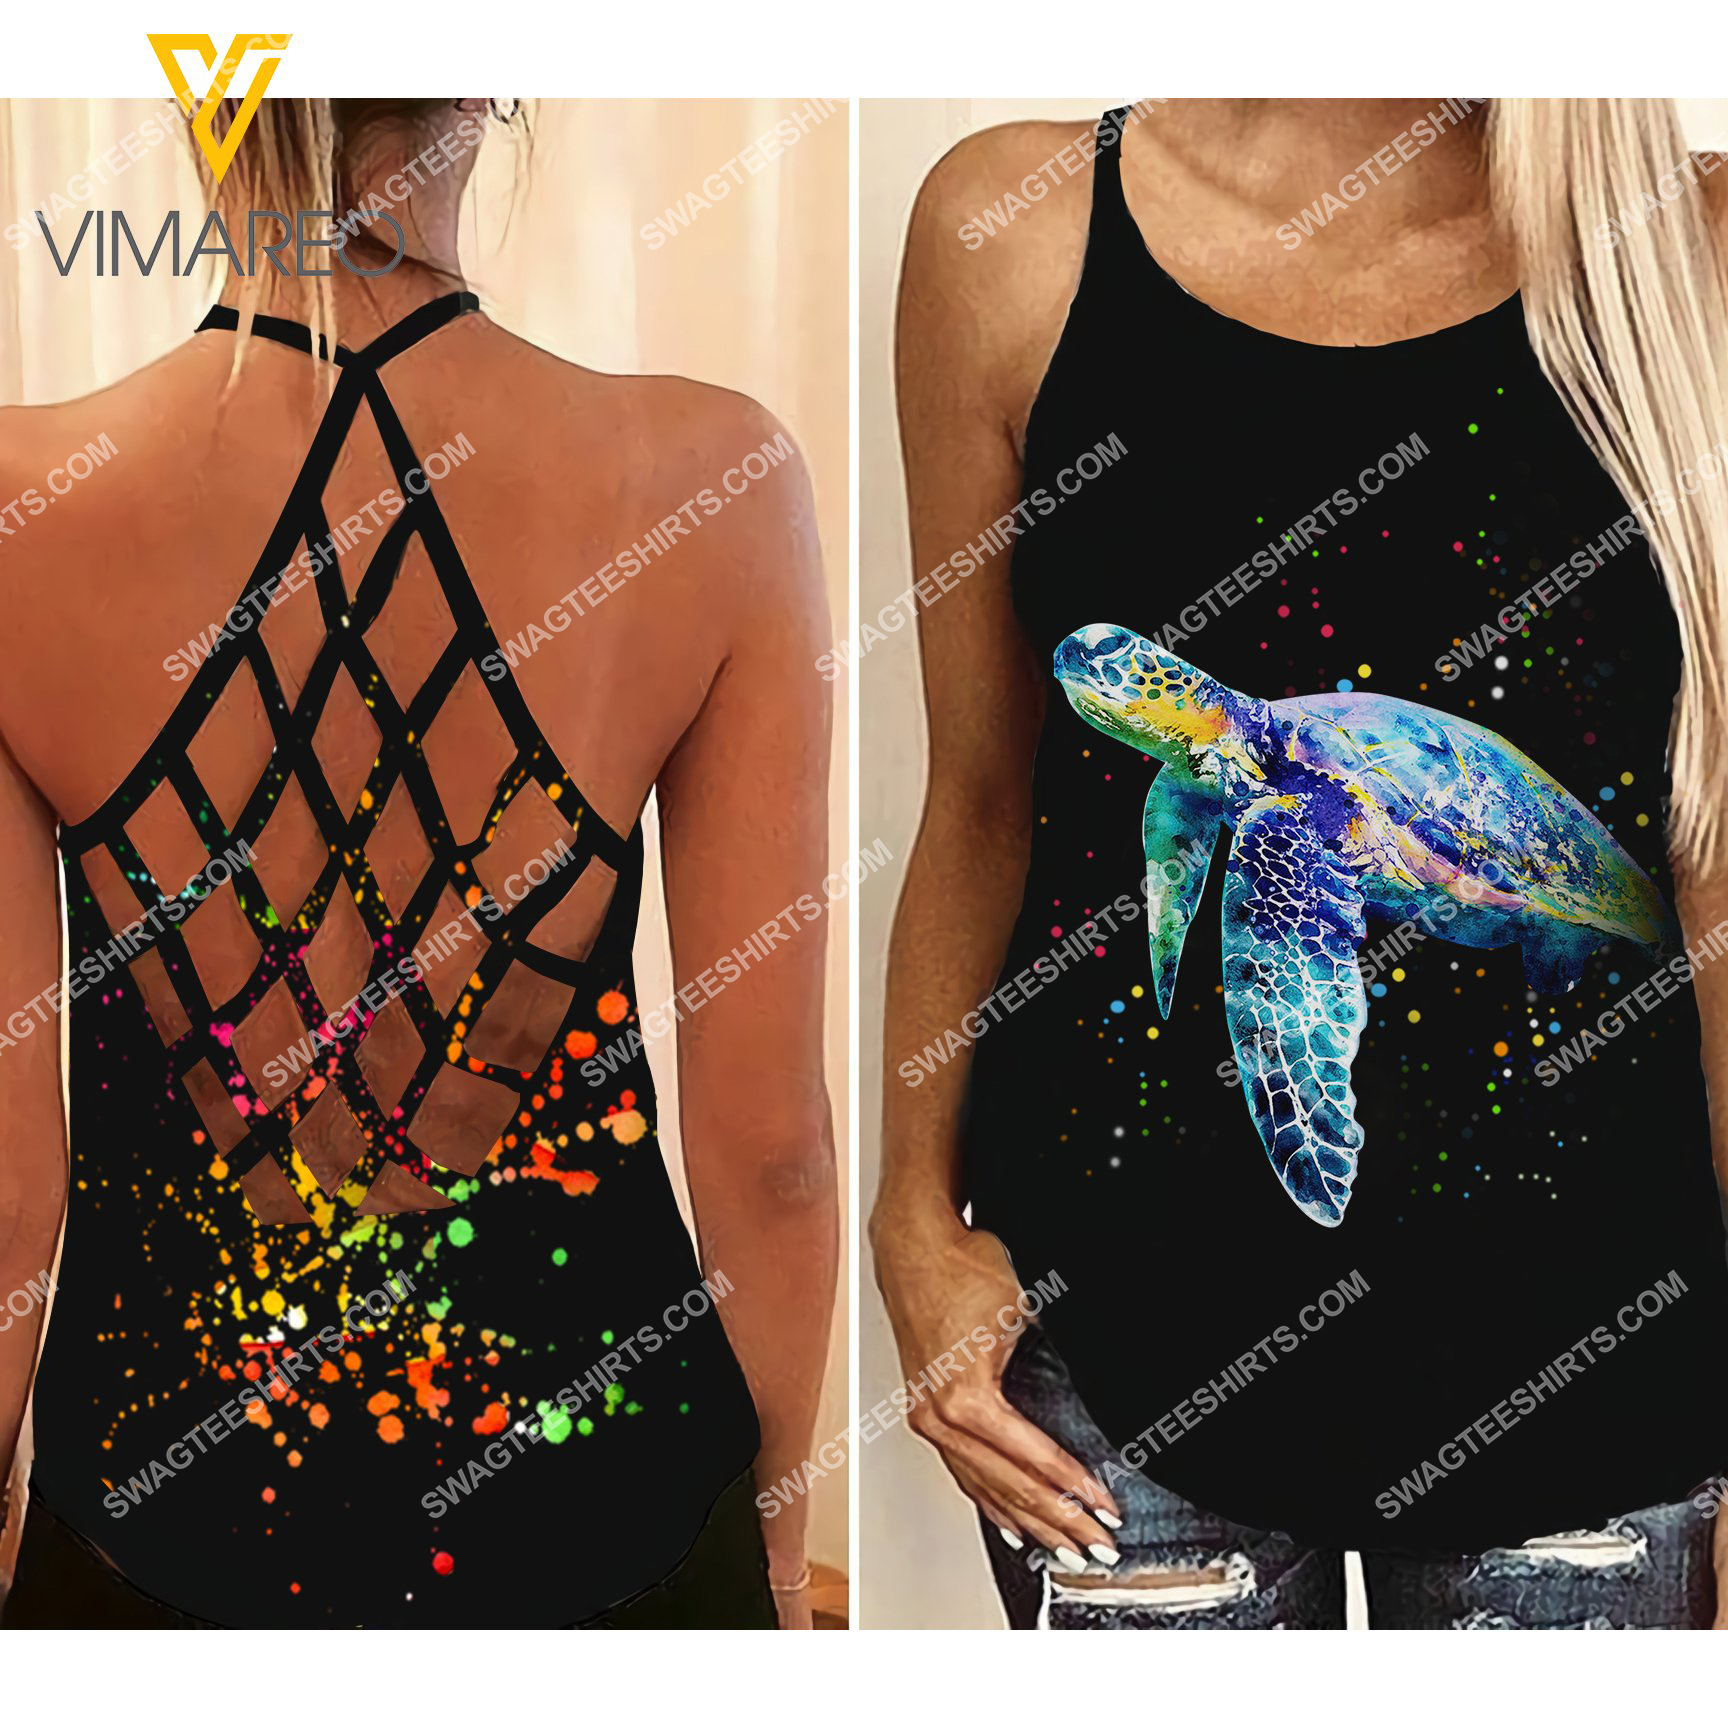 sea turtle colorful all over printed strappy back tank top 2 - Copy (2)